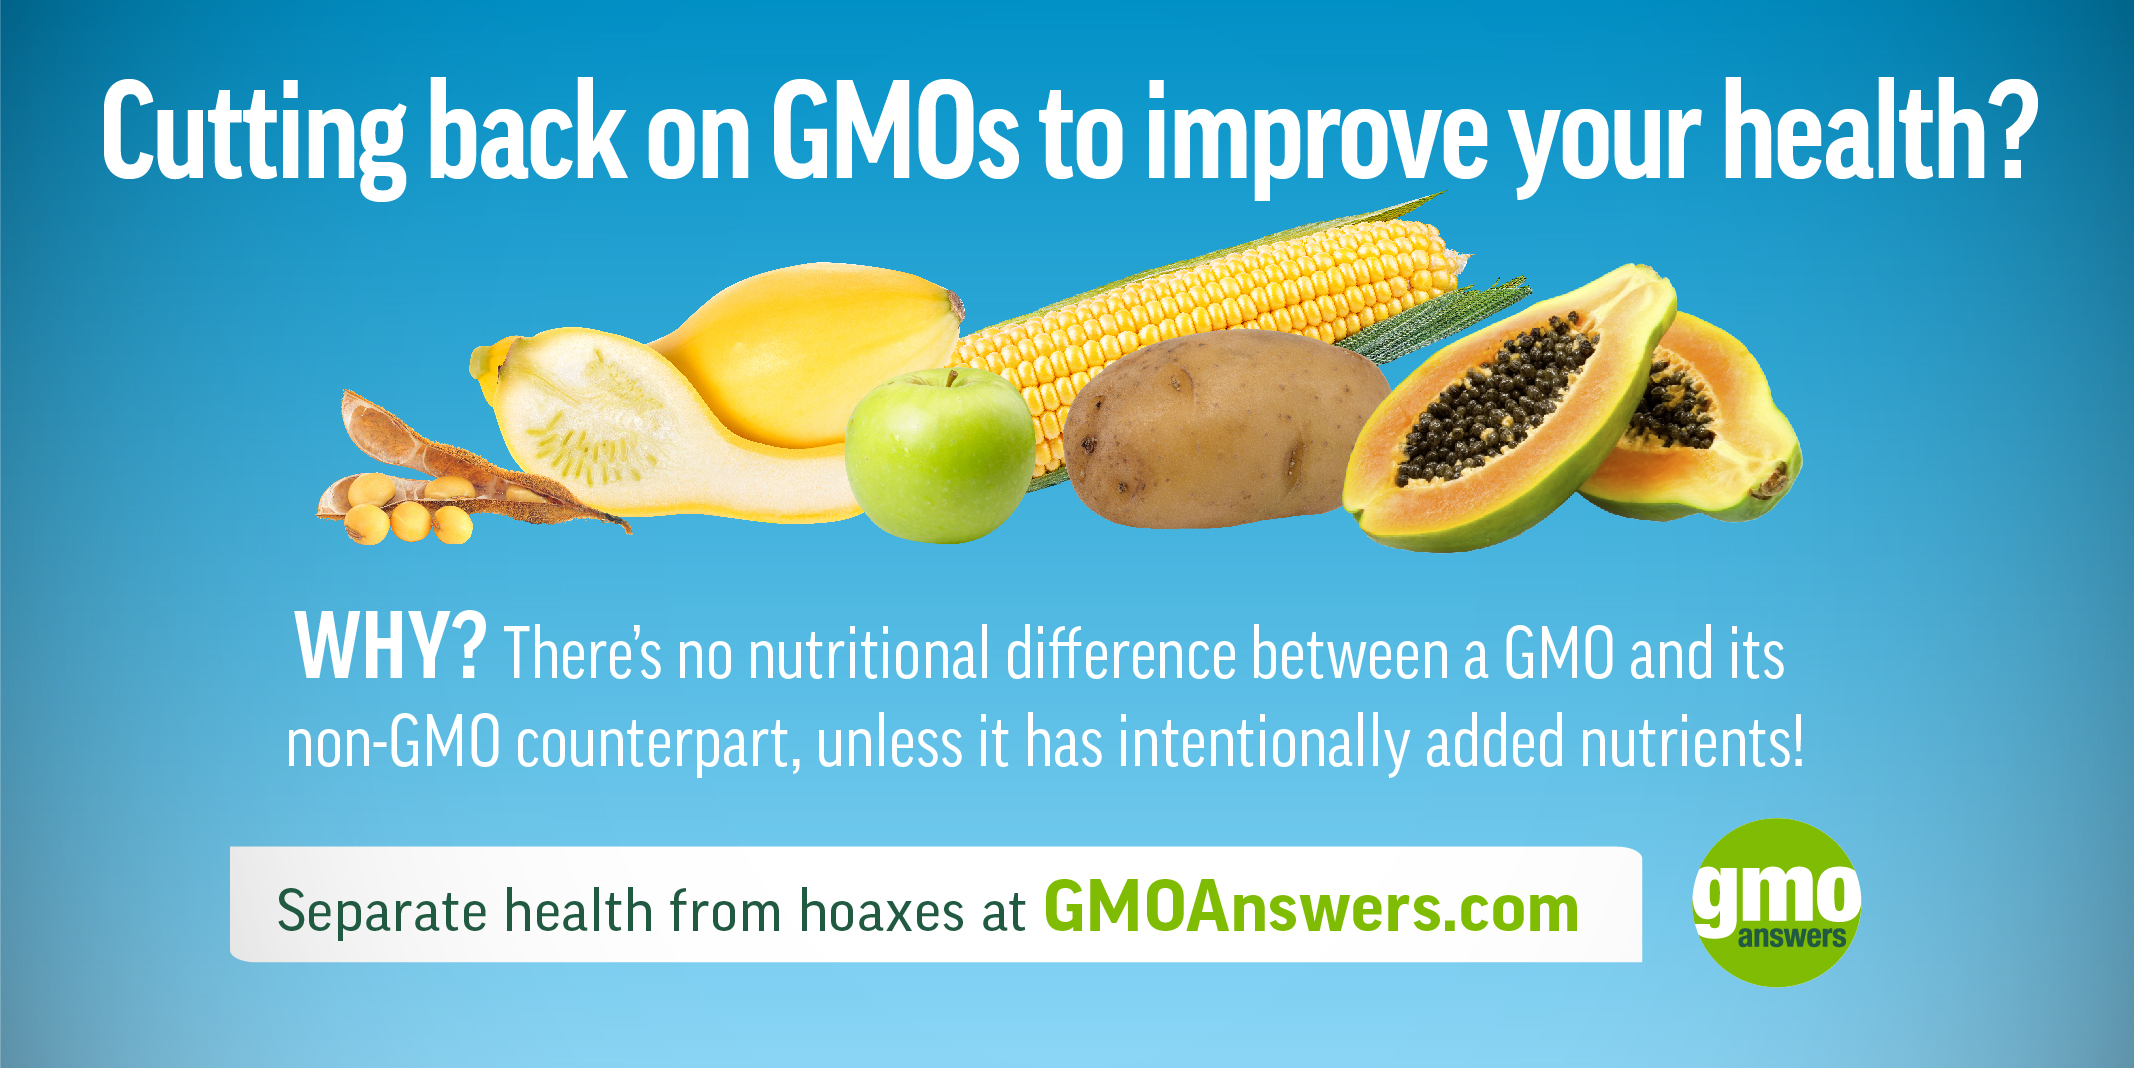 SOCIAL TILE: GMOs & Nutrition – Separate health from hoaxes